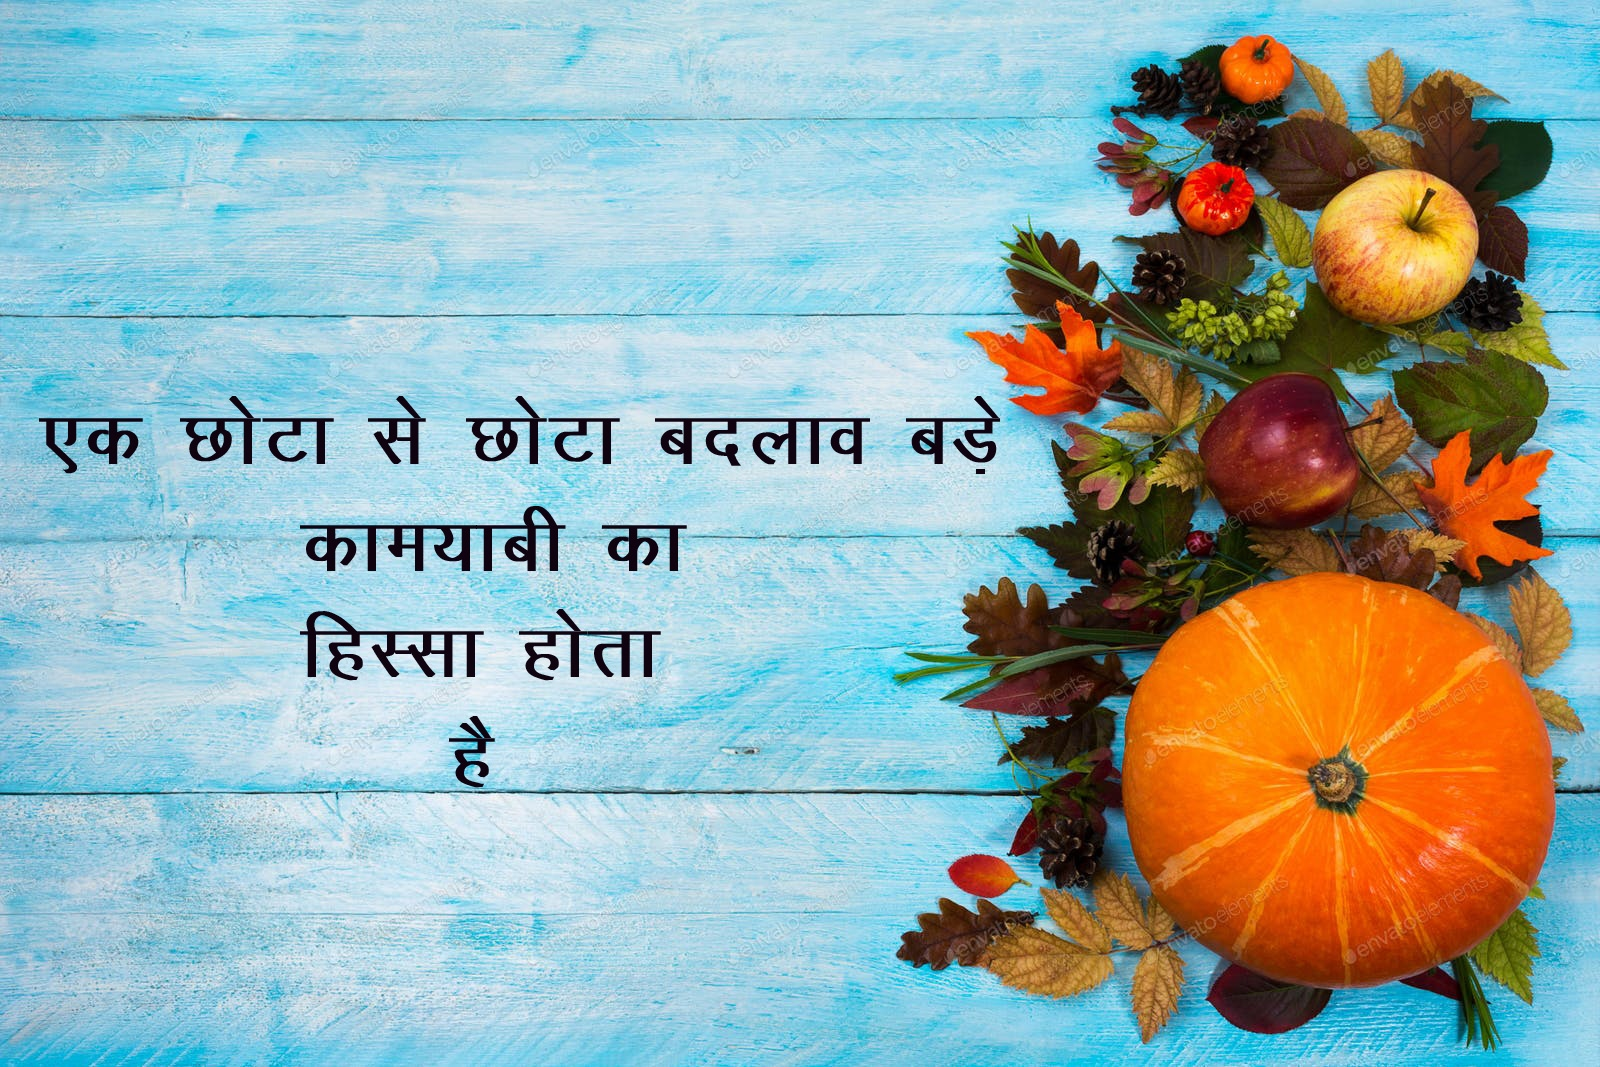 Hindi Inspirational Images Photo Download for DP